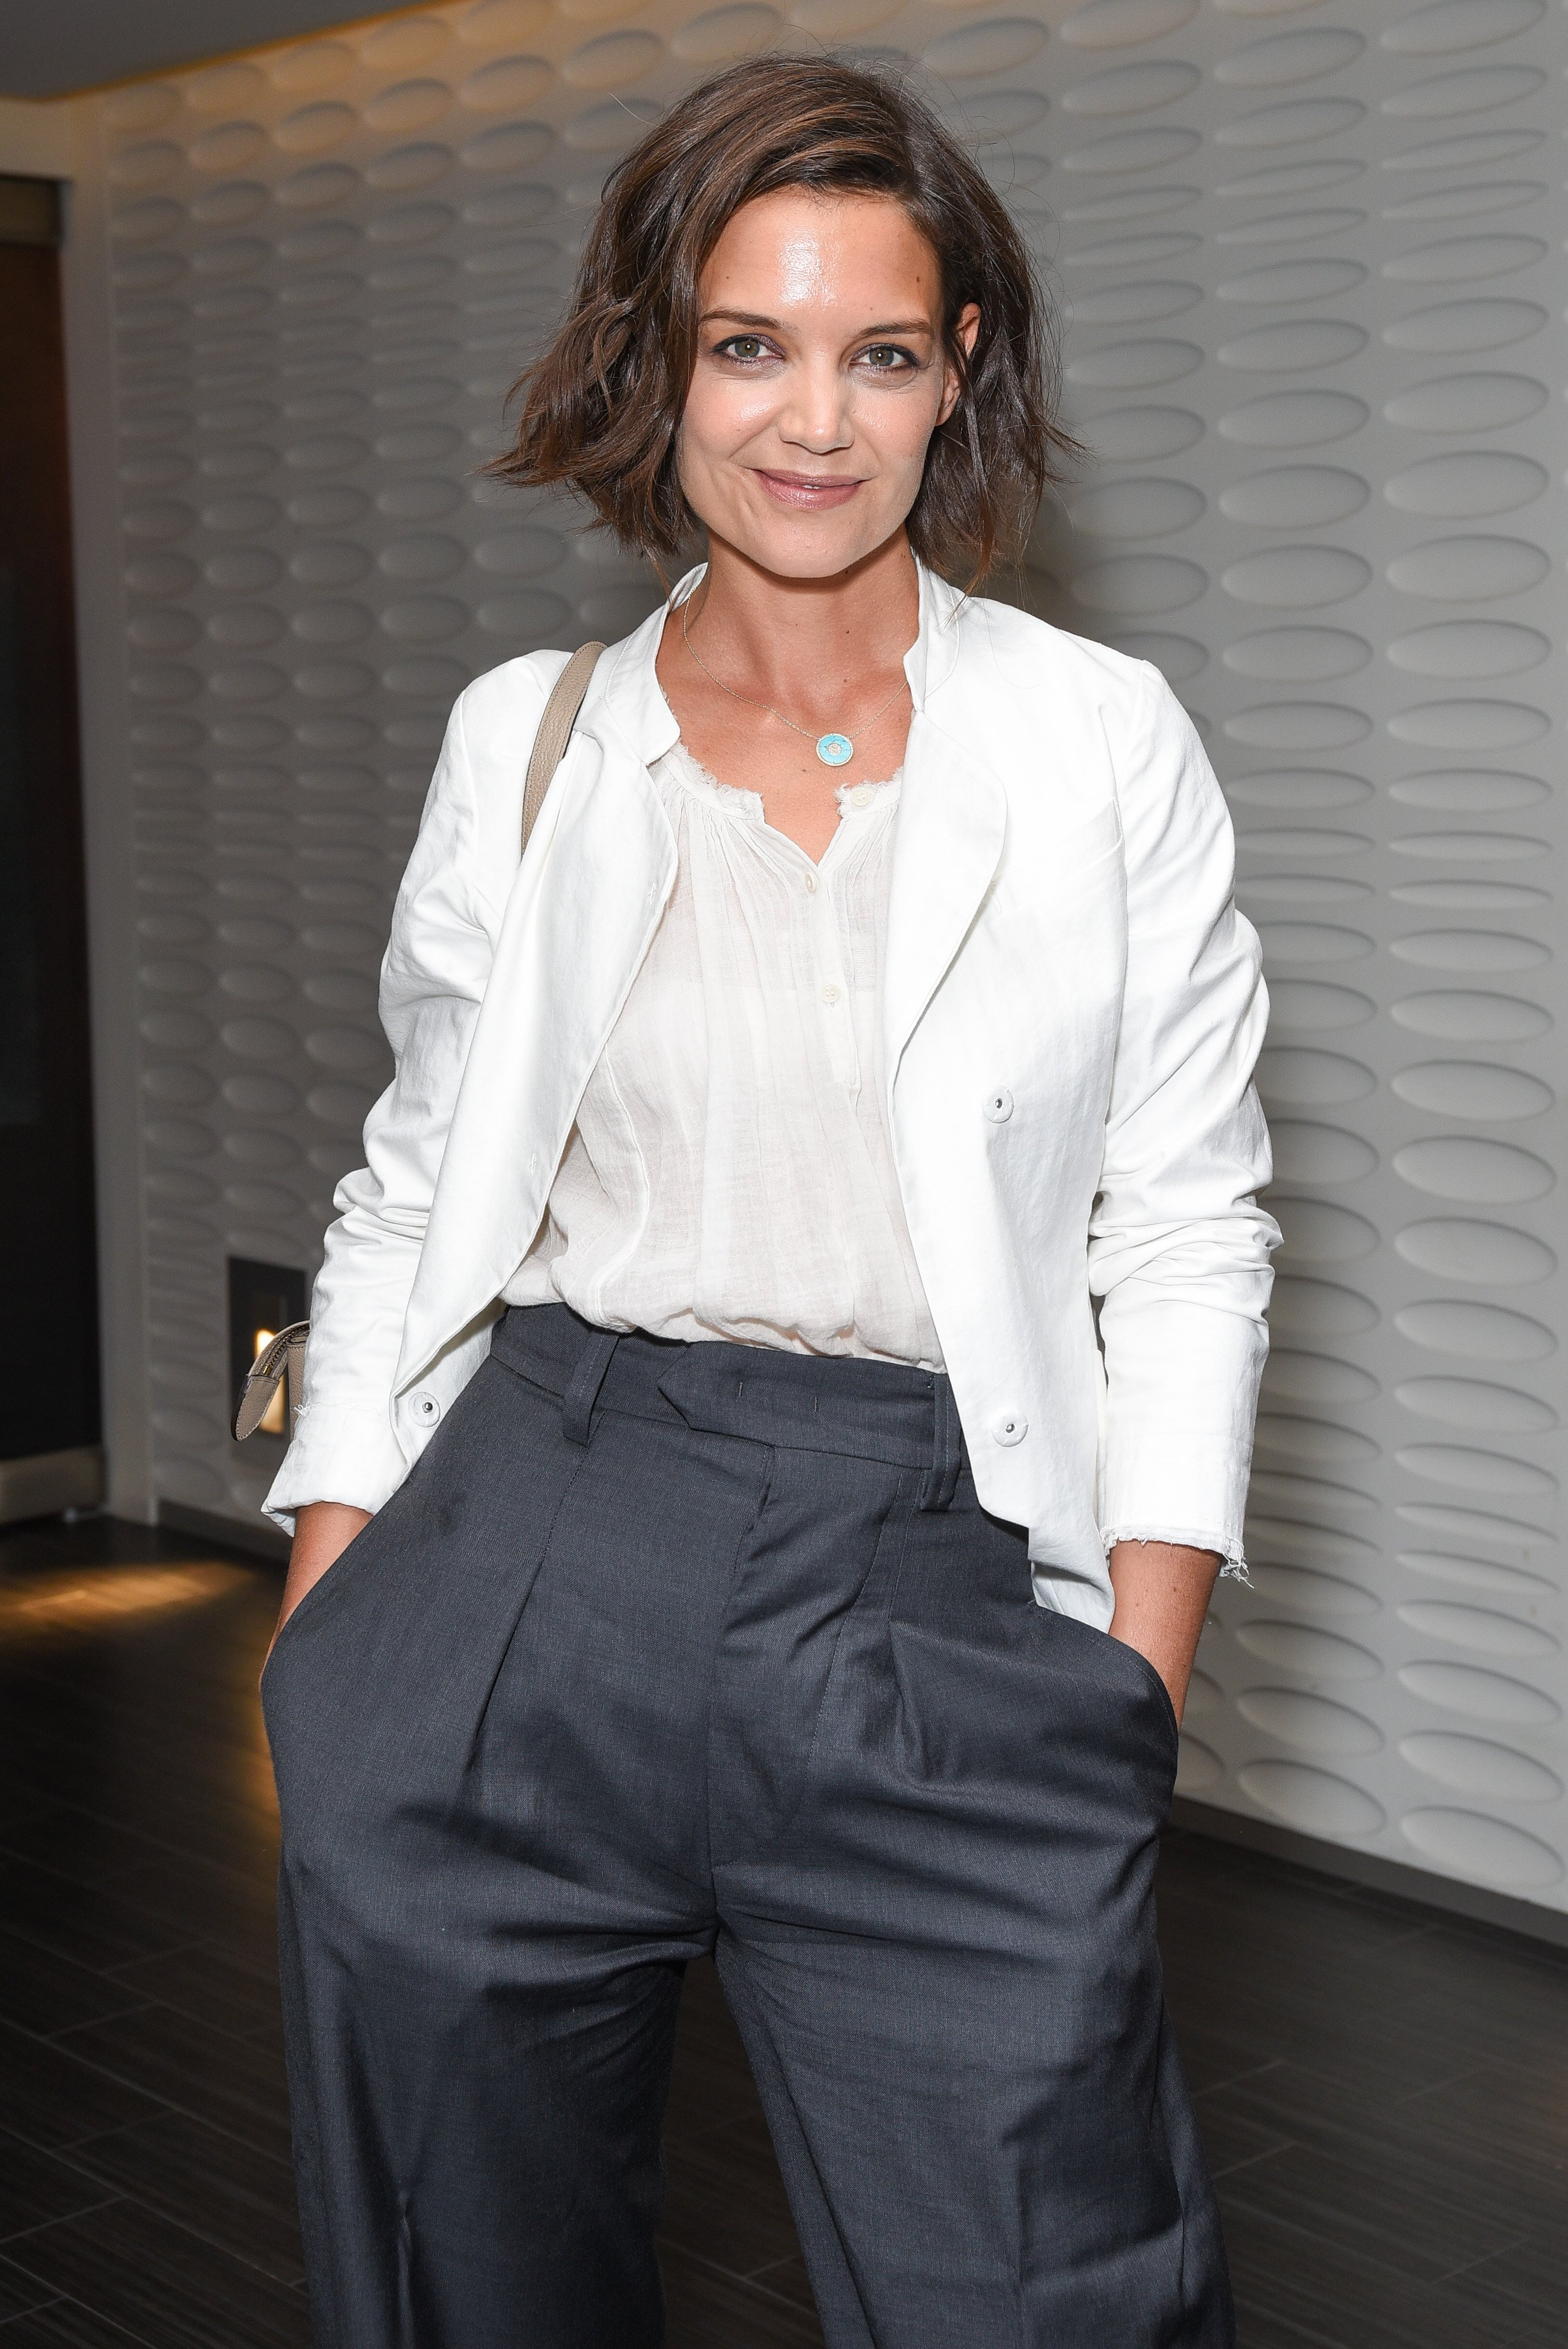 """Katie Holmes attends the after party for the premiere of """"The Wife"""" in West Hollywood, California on July 23, 2018 